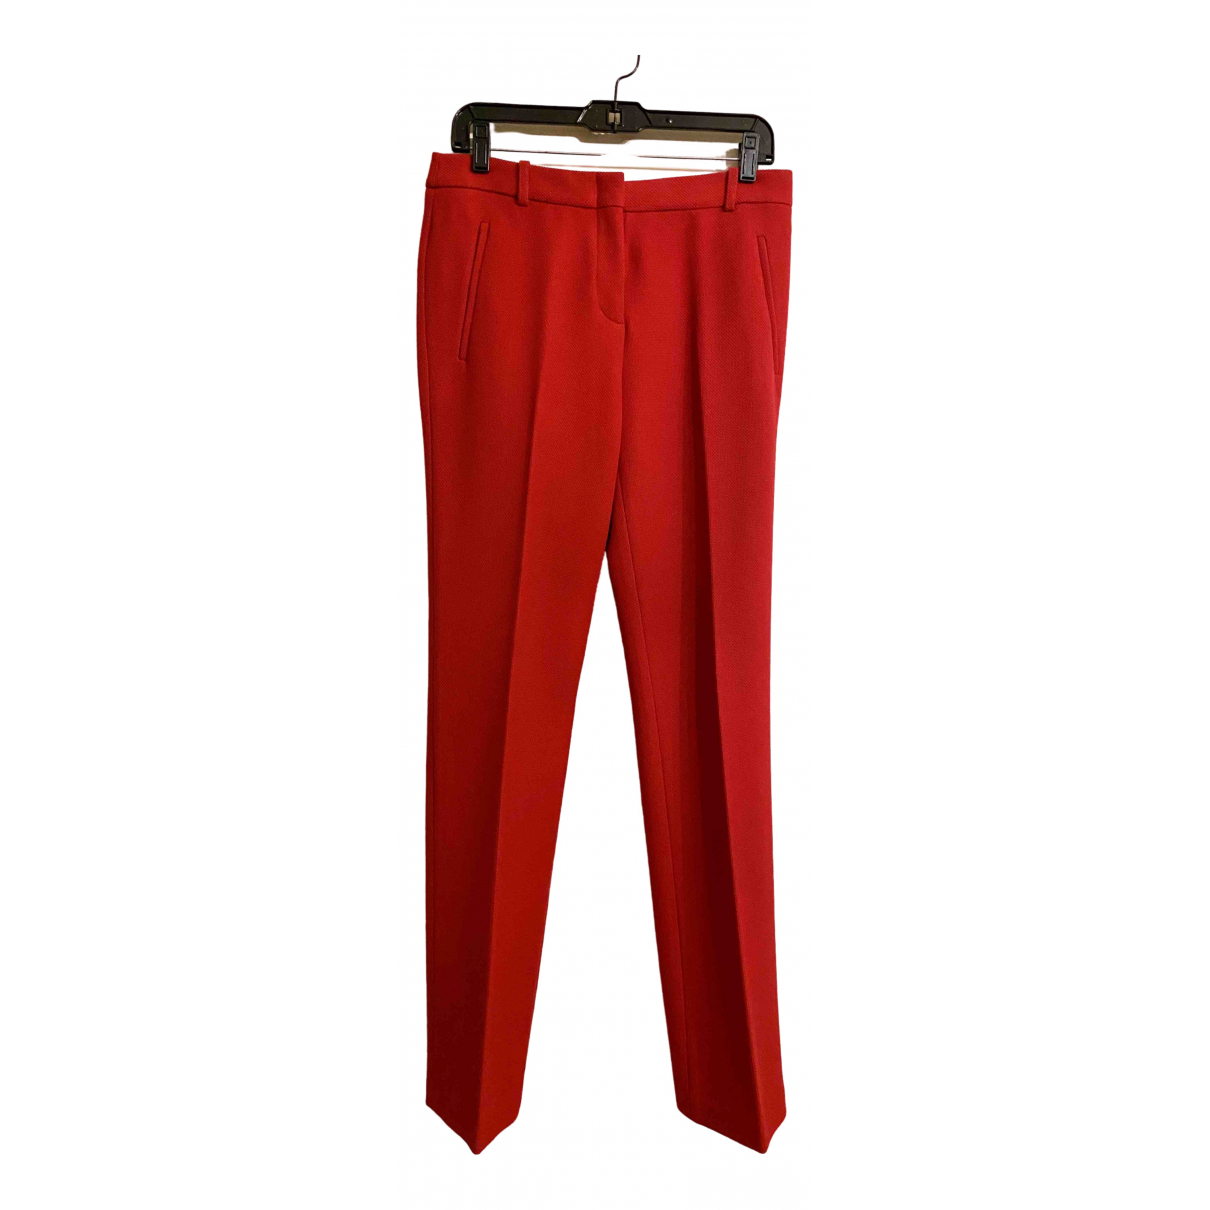 Bcbg Max Azria \N Red Trousers for Women S International